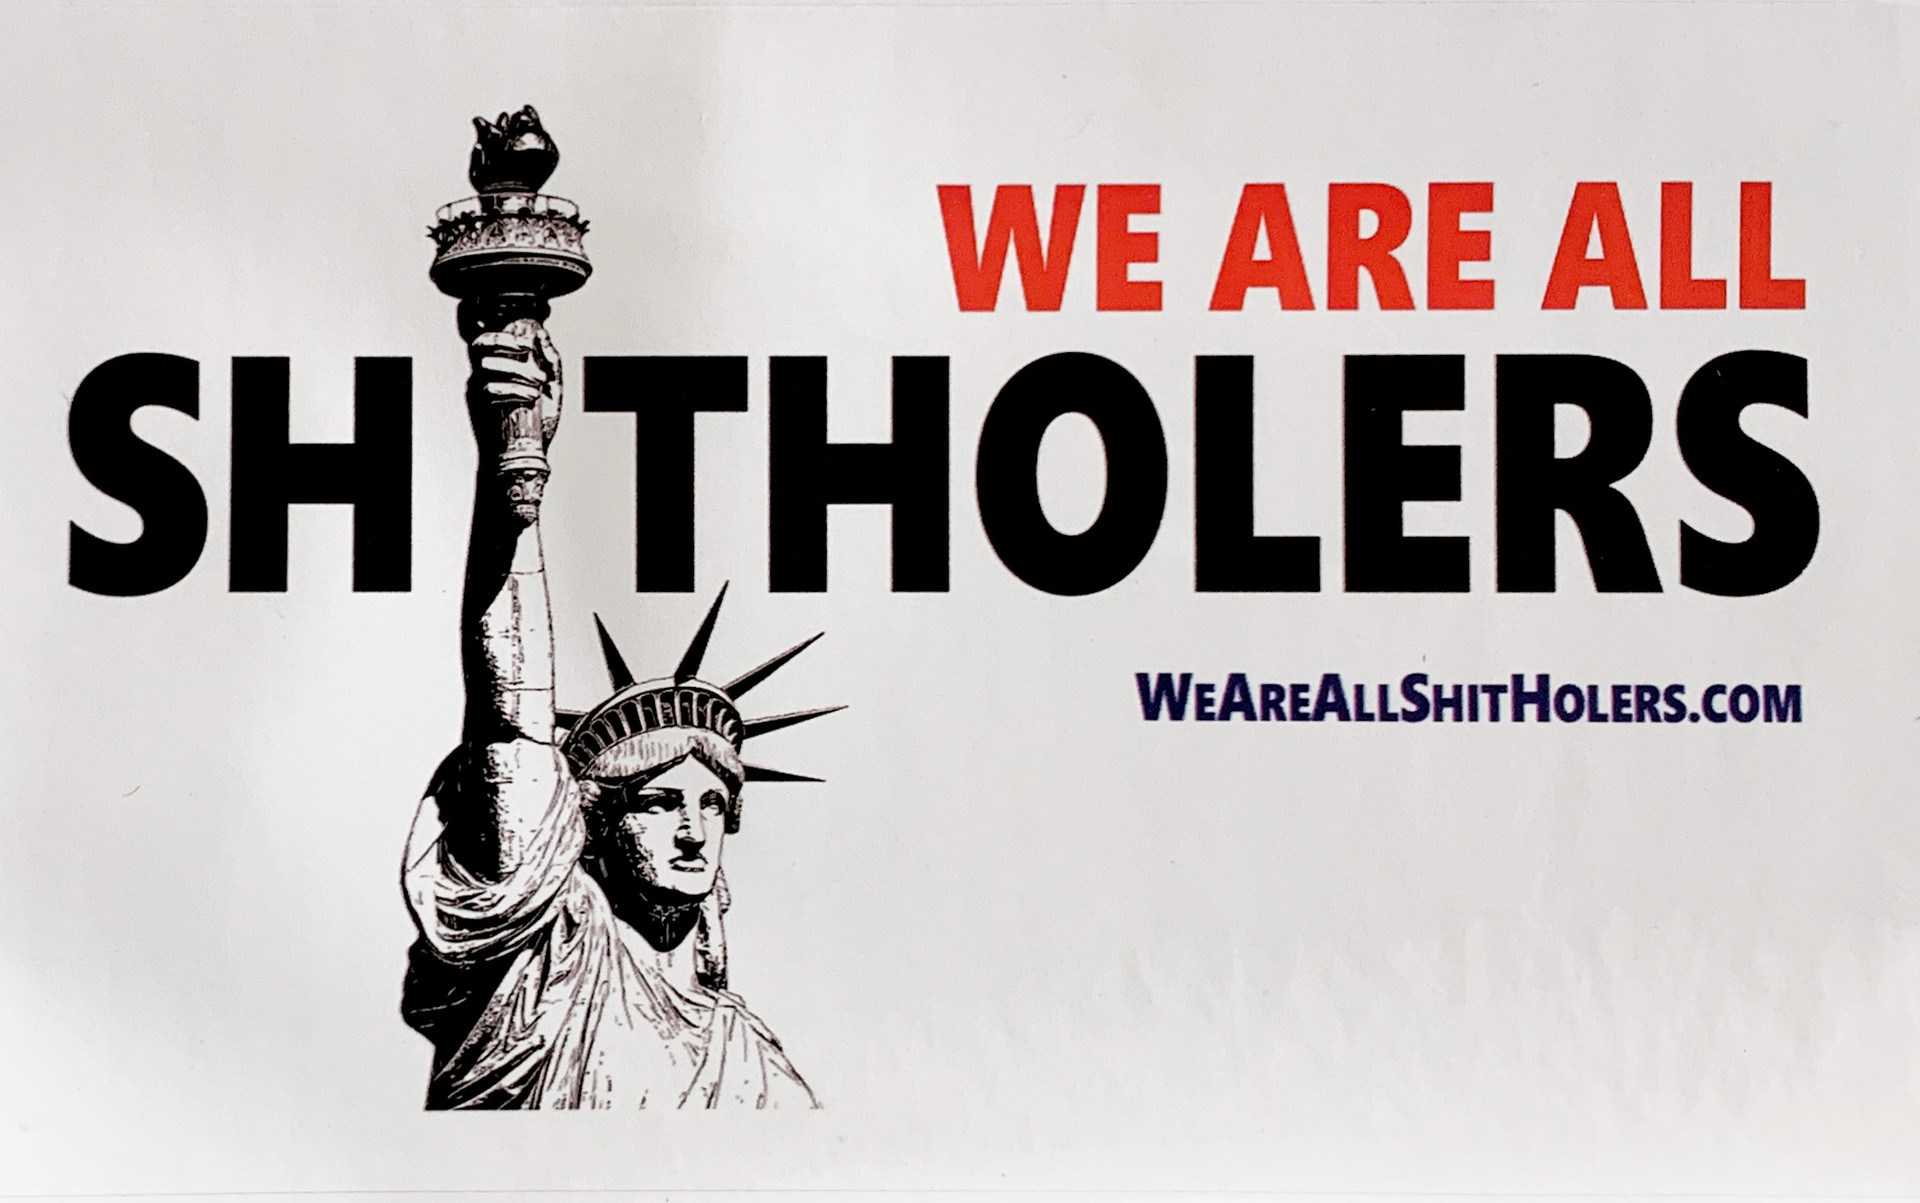 We Are All Shitholers